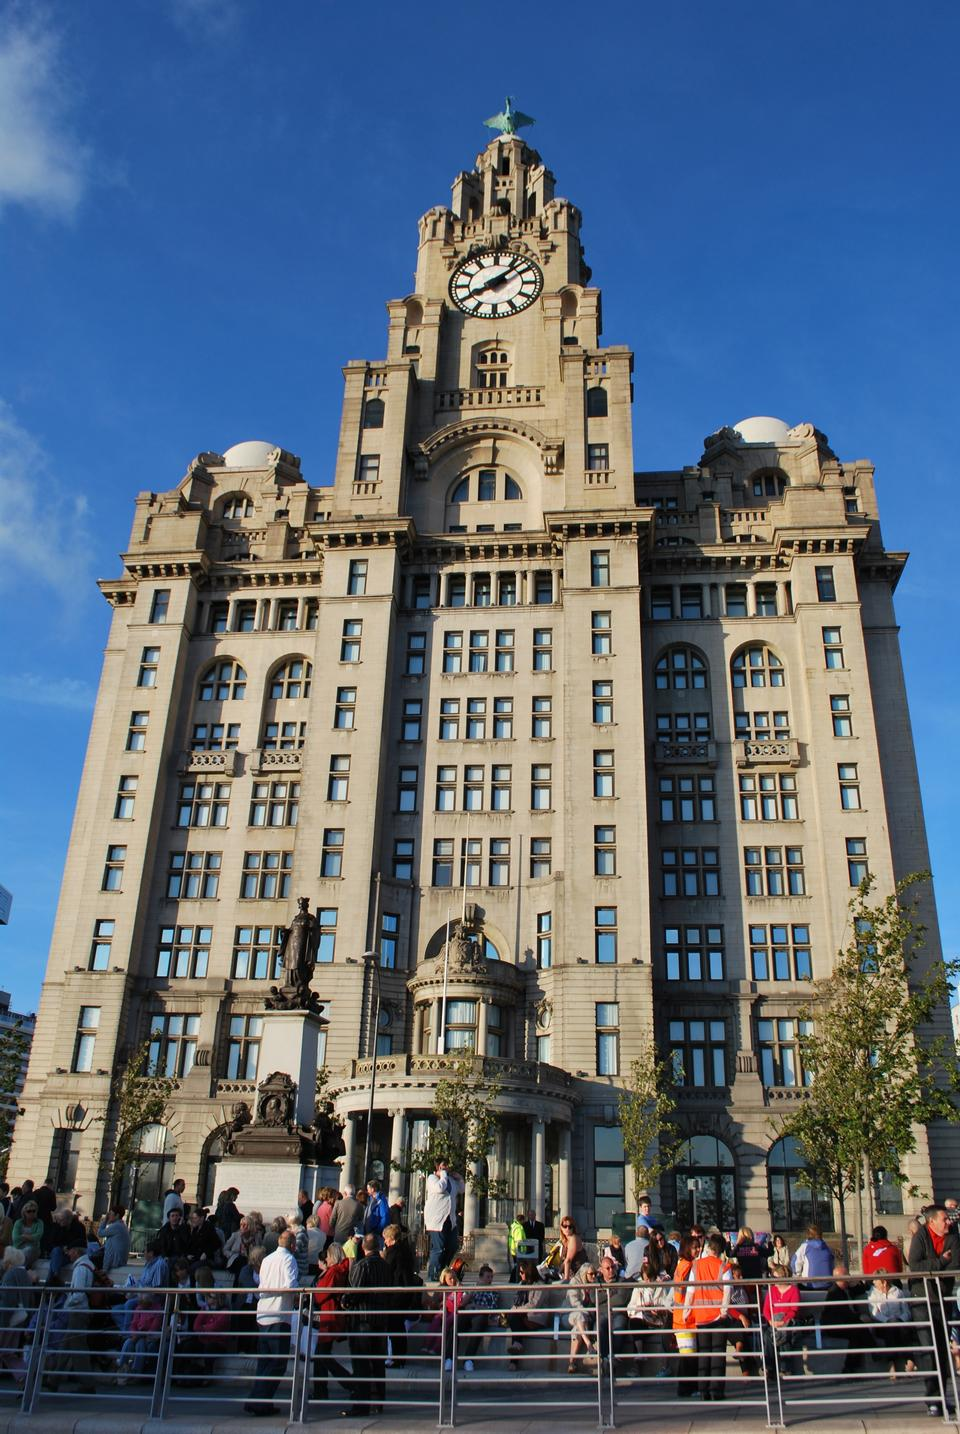 Free Royal Liver Building in Liverpool, England